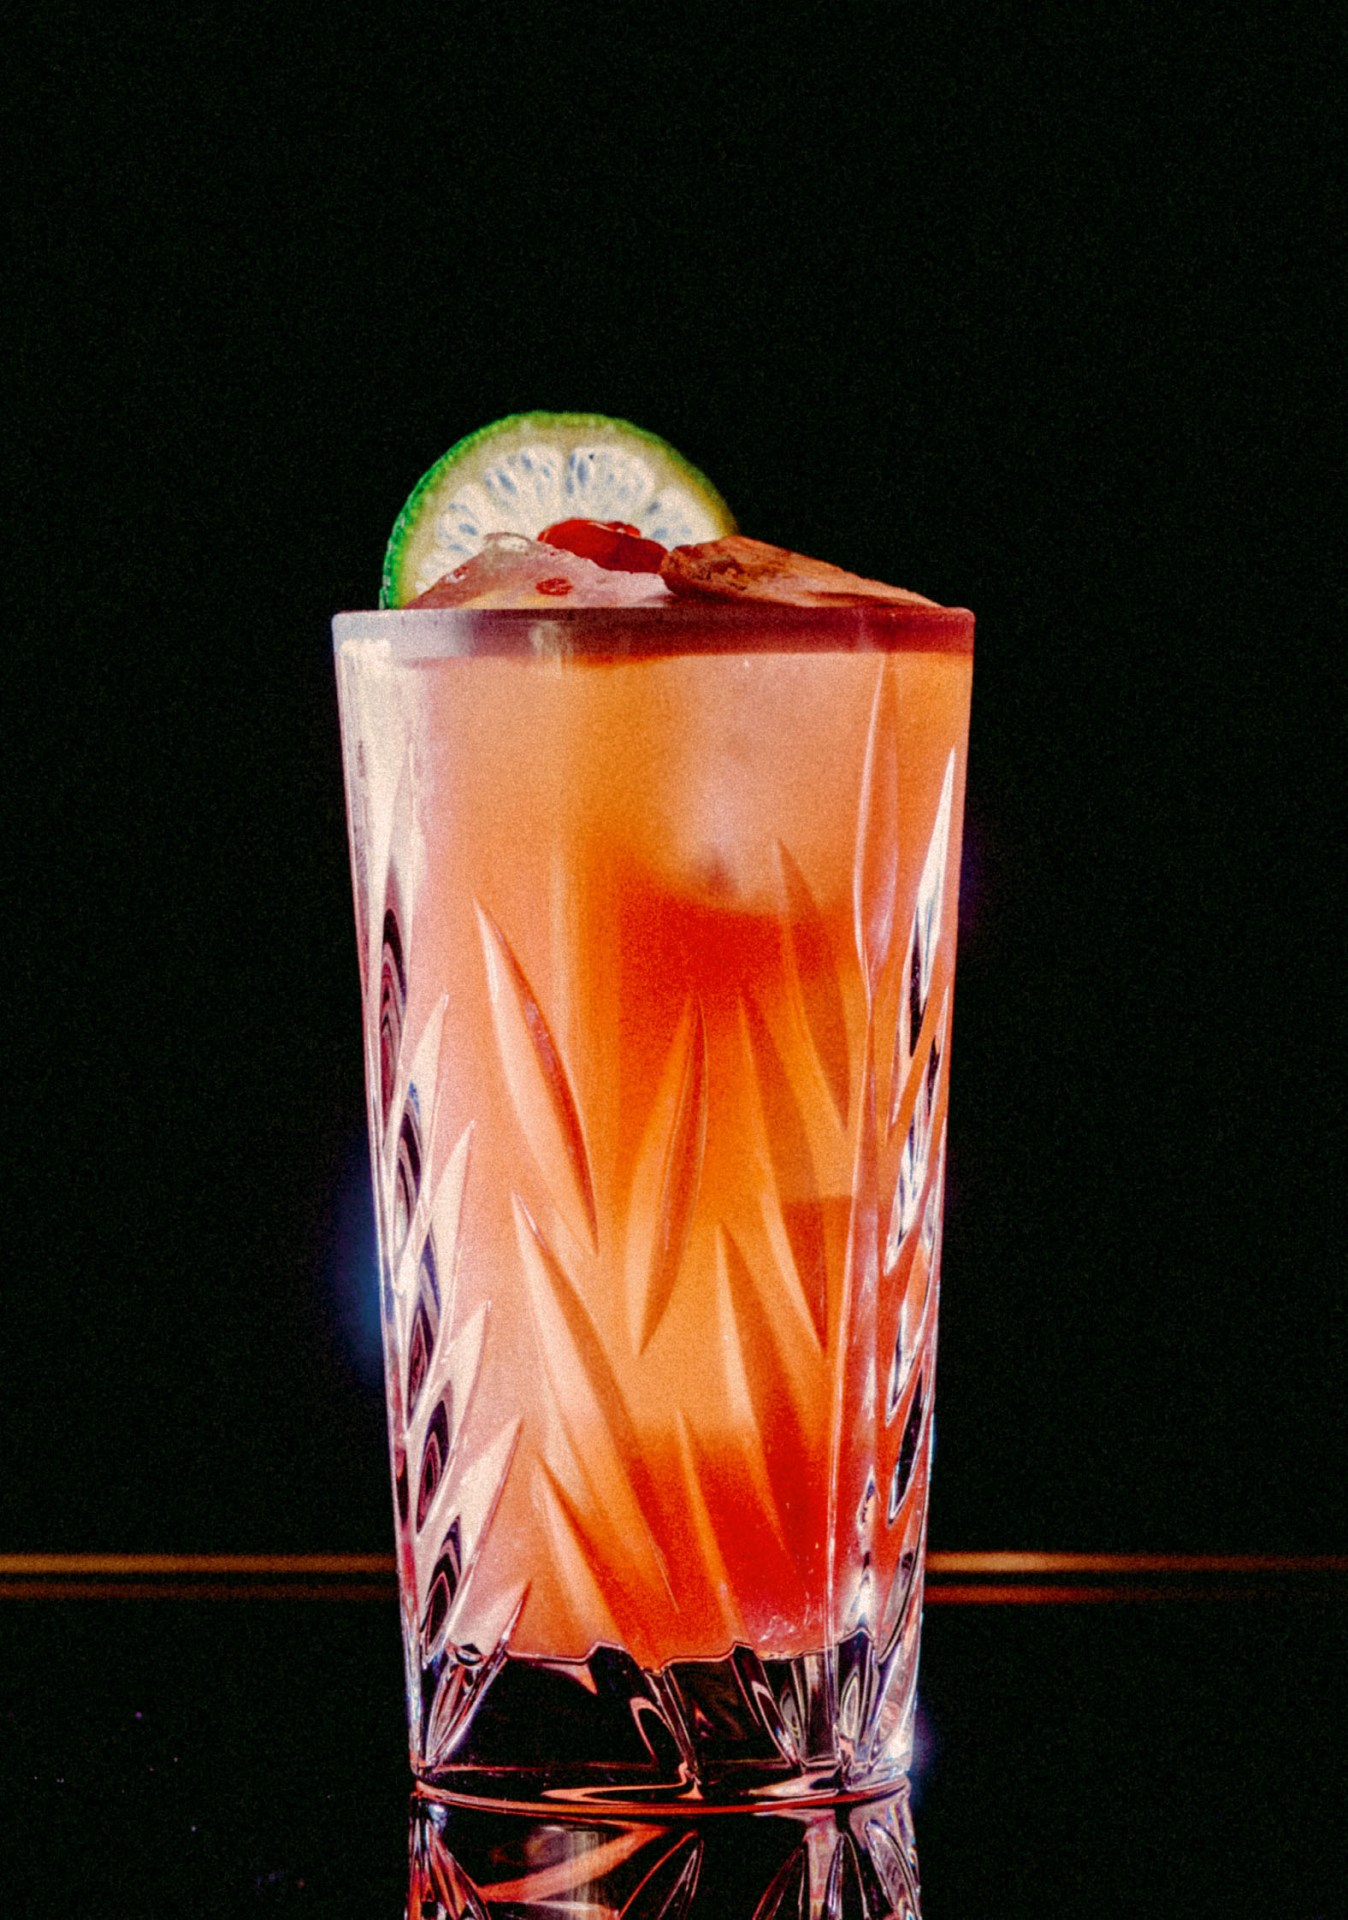 Recipe: 4.5cl Mezcal infused with Lime Leaves, Chipotle and Thai Chilies 2cl Lime Juice 1.5cl Chambord 1cl Sugar Syrup 6cl Pineapple Juice